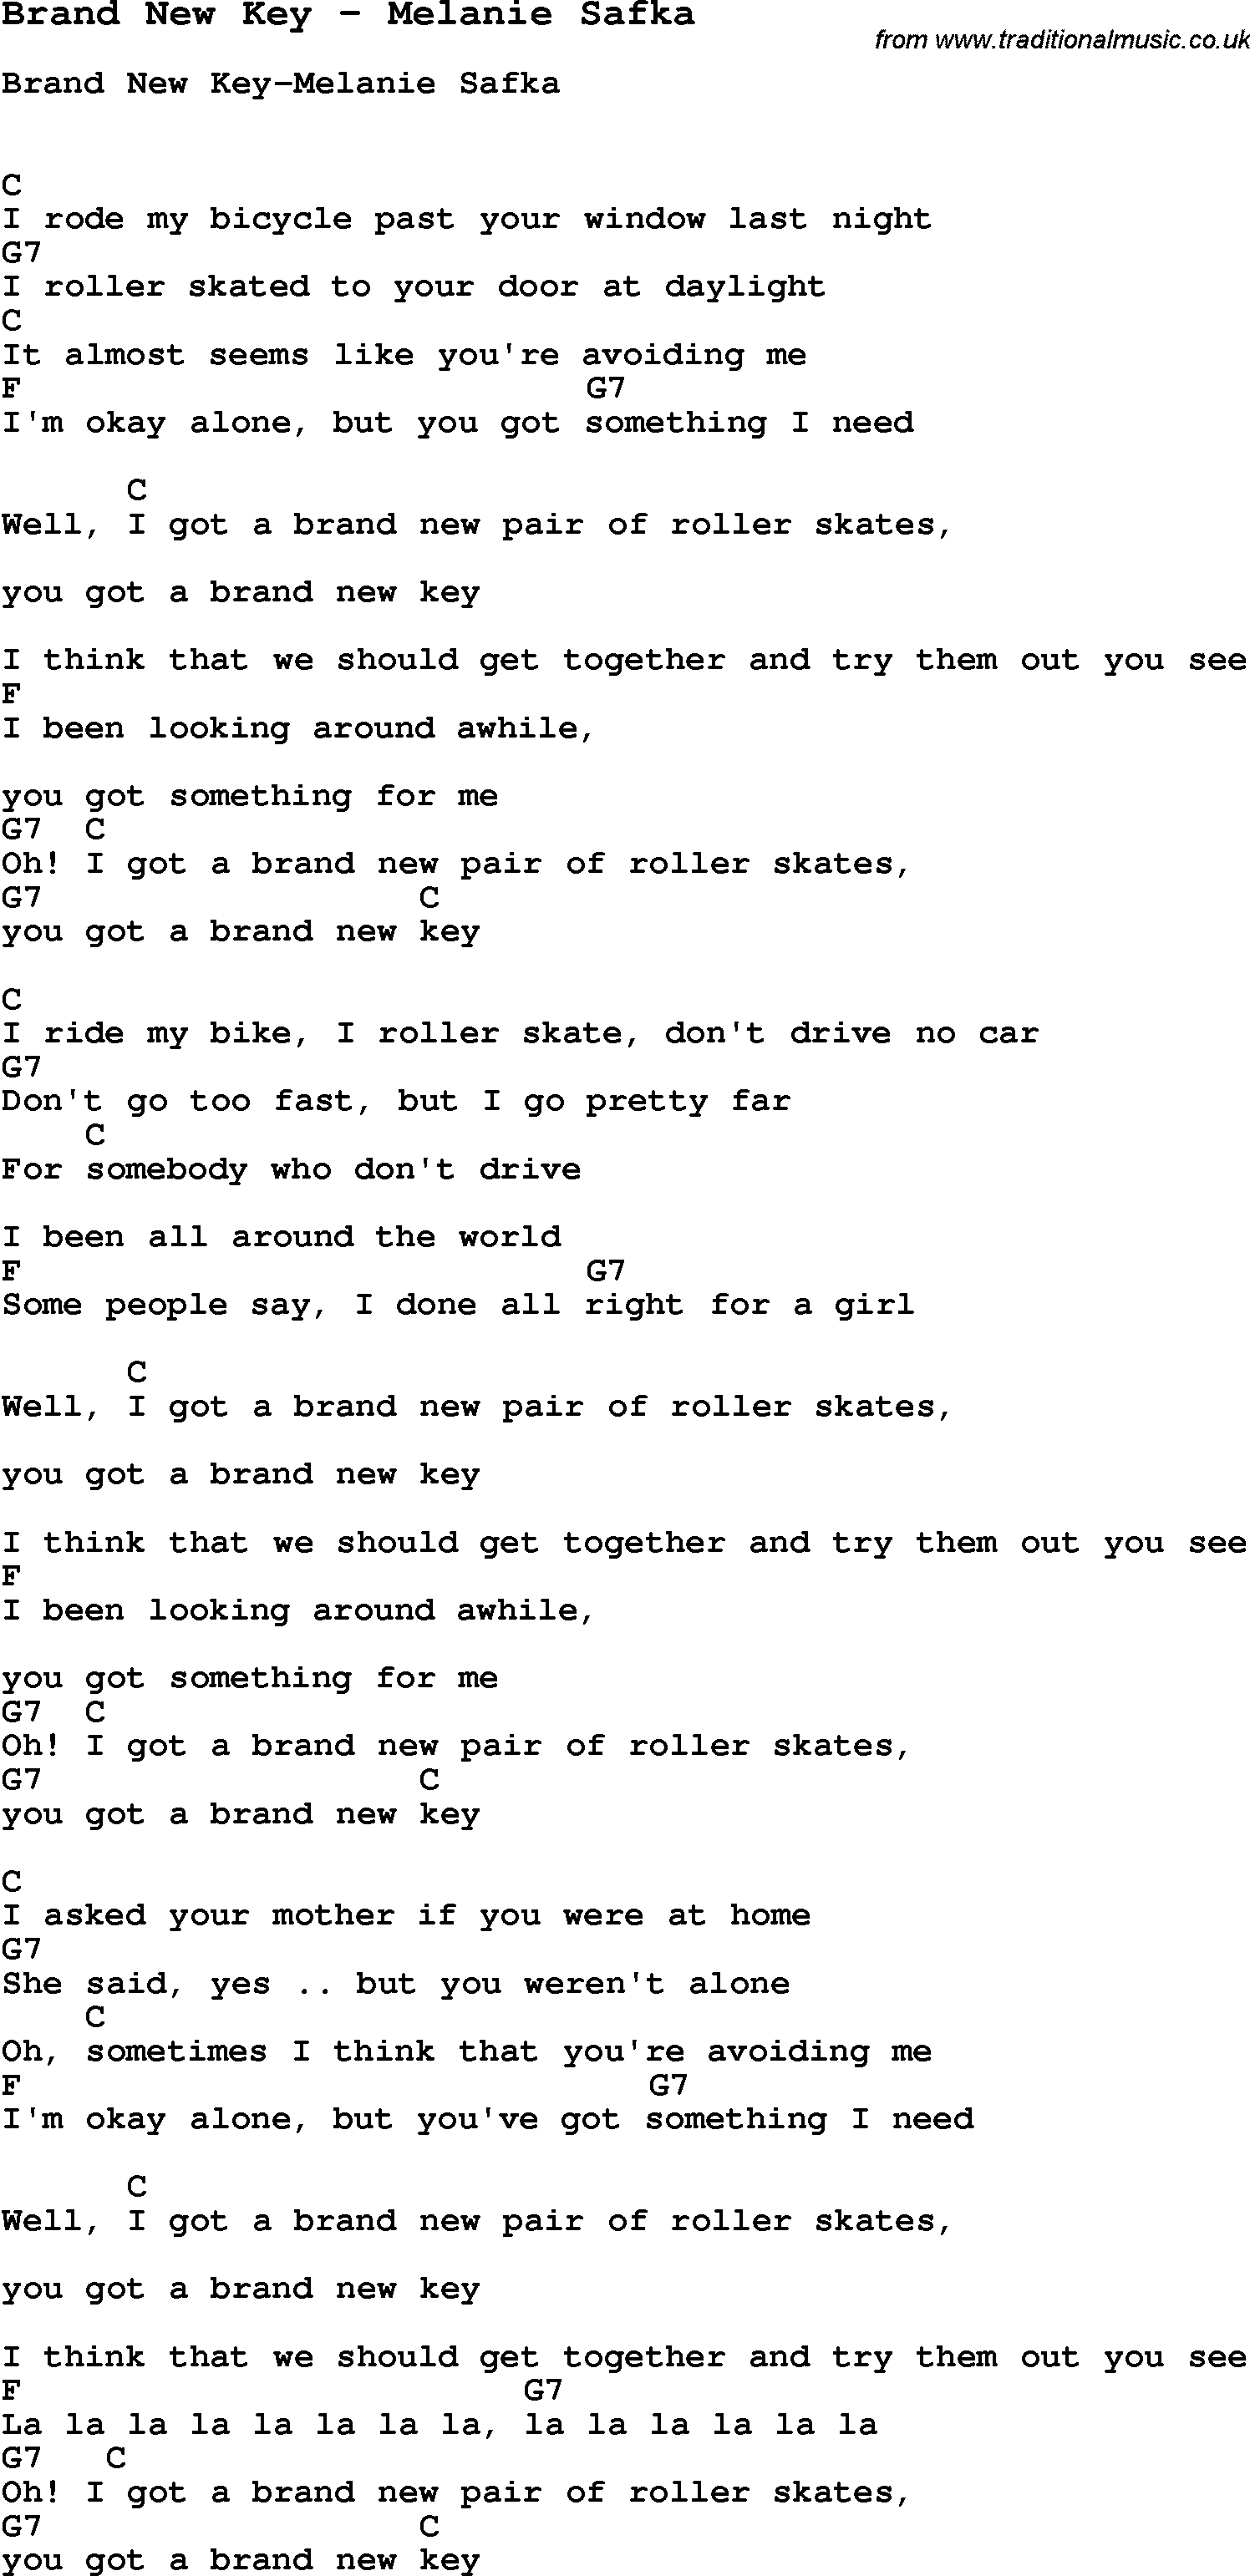 ukulele john lennon imagine ukulele tab music song brand new key by melanie safka with lyrics for vocal performance and accompaniment chords hexwebz Gallery